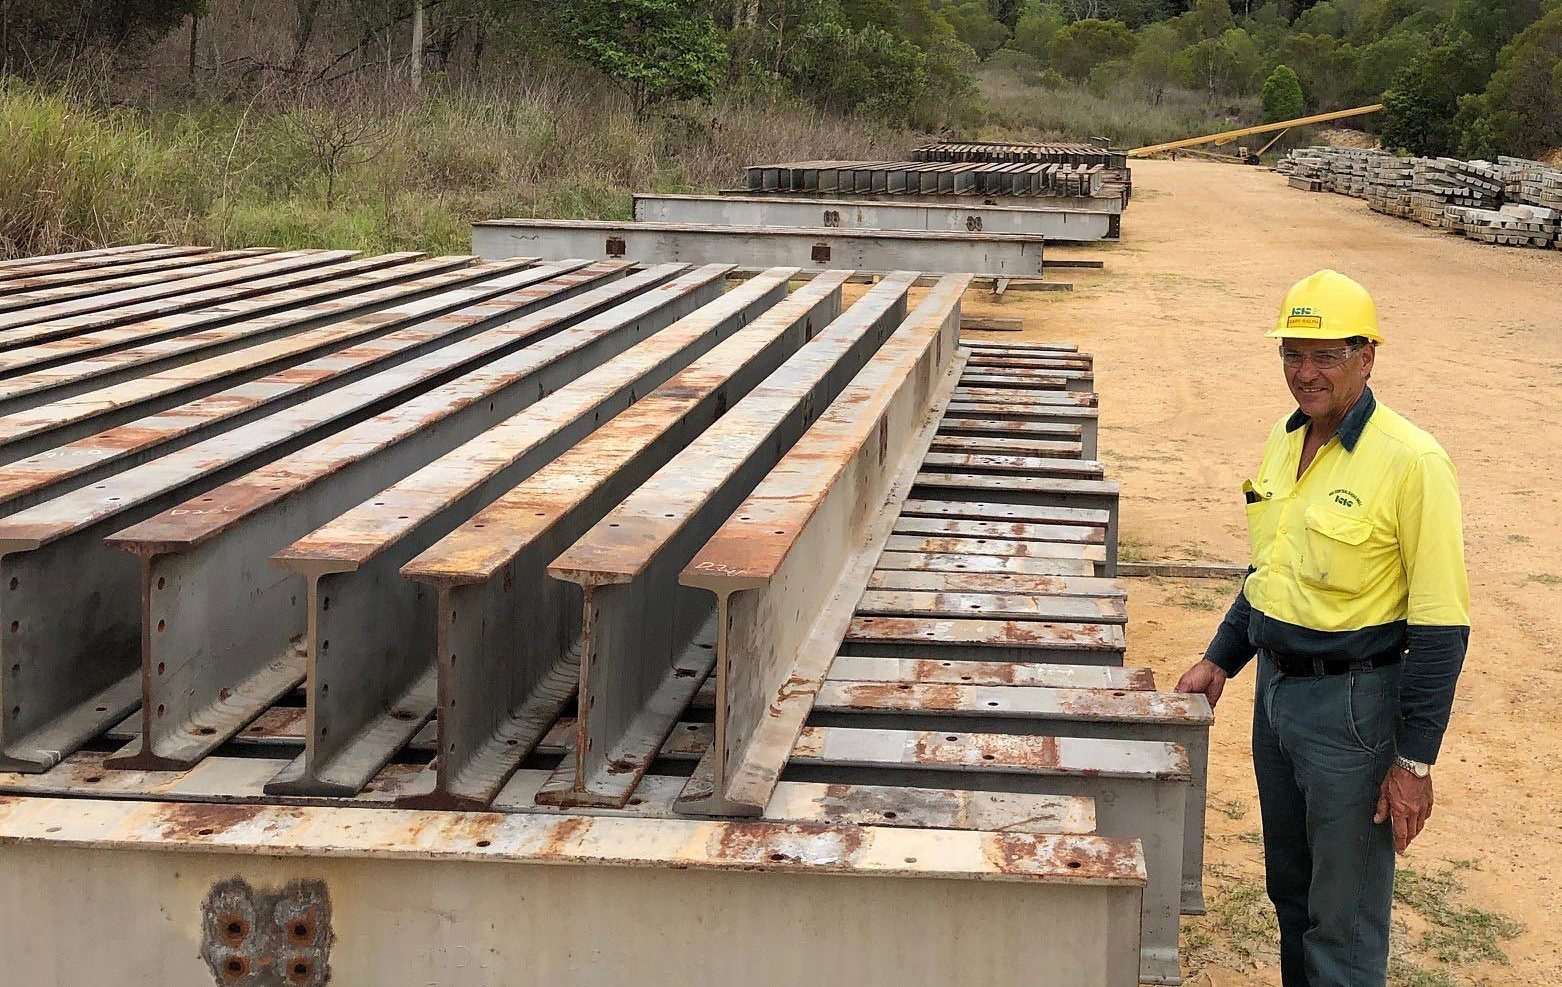 Mill supervisor Gary Ralph with steel recovered from bridges along the decommissioned Hughenden to Winton rail line which is being used in the Isis Mill cane rail line project. Also pictured is a stockpile of concrete sleepers manufactured at the Mill.